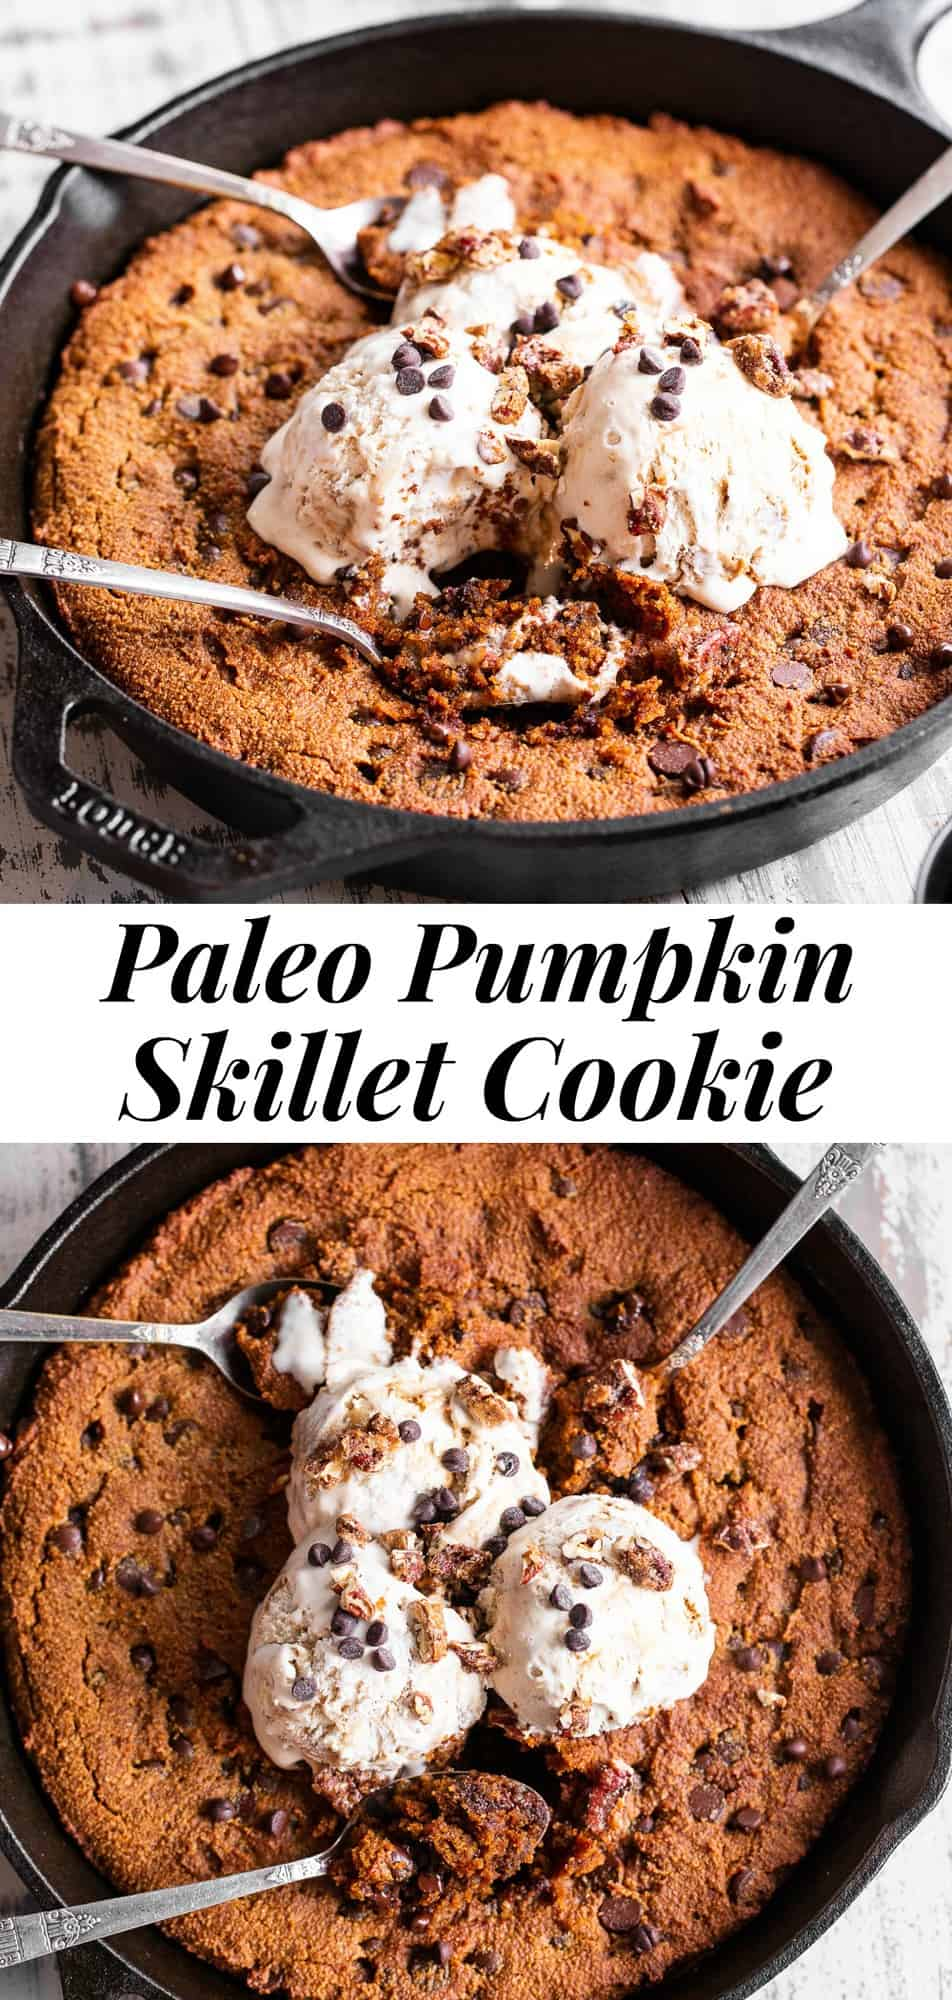 This gooey Pumpkin Skillet Cookie is packed with chocolate chips and warm pumpkin spices.  It's delicious out of the oven topped with your favorites like coconut vanilla ice cream, candied pecans and extra chocolate chips!  Gluten free, dairy free and paleo.  #paleo #pumpkin #glutenfree